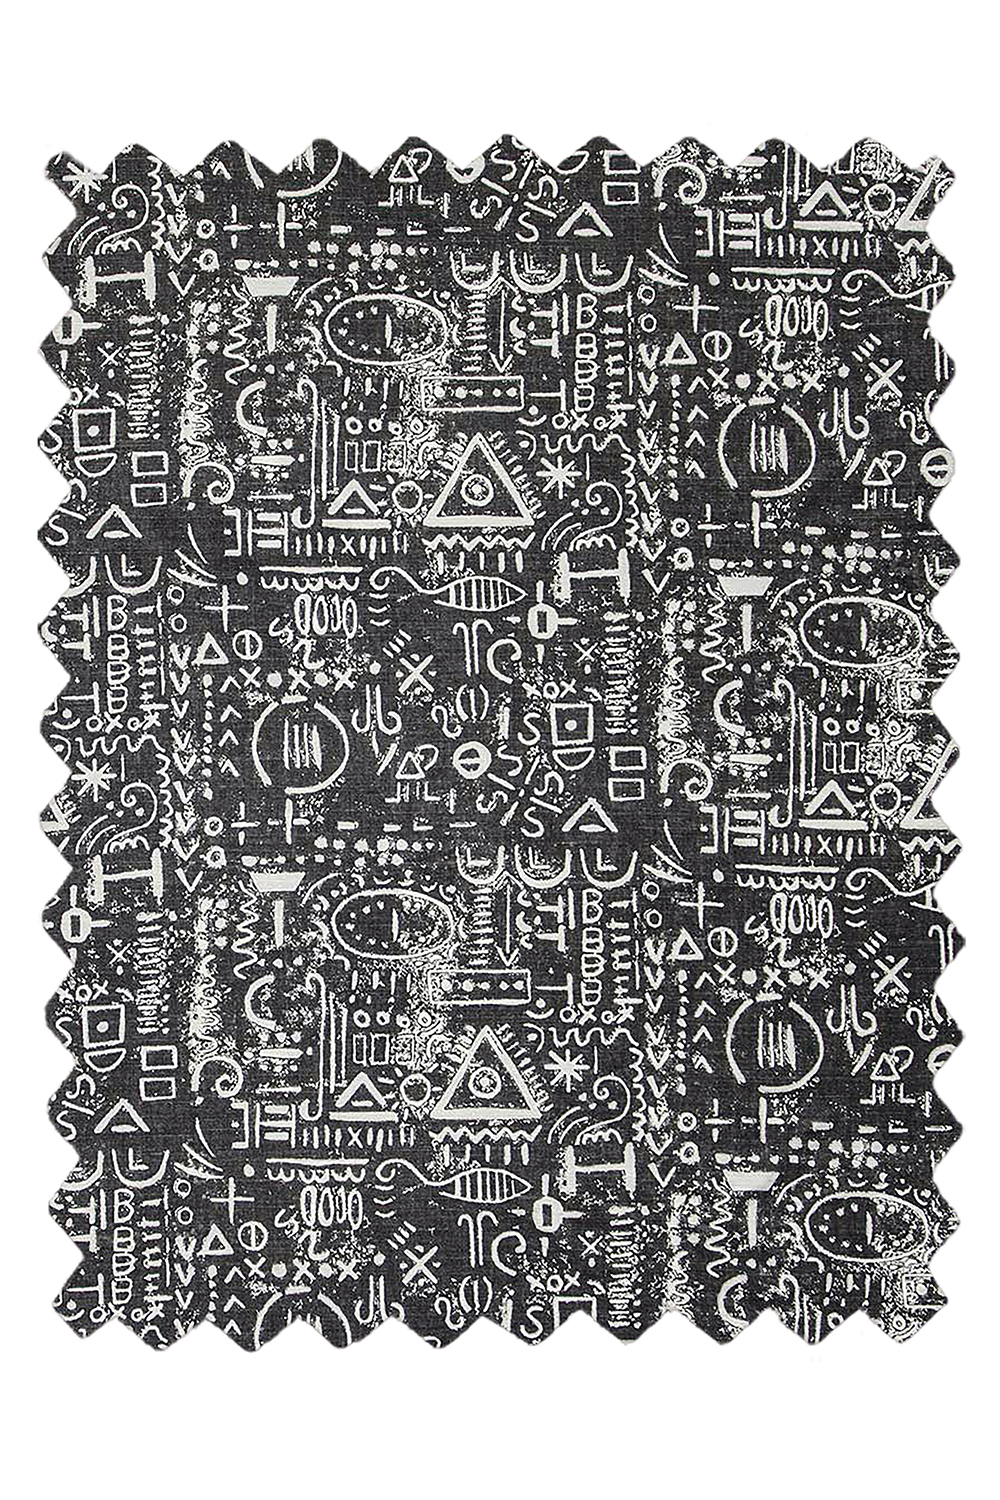 Tacit-in-Graphite-zigzag-edge-swatch